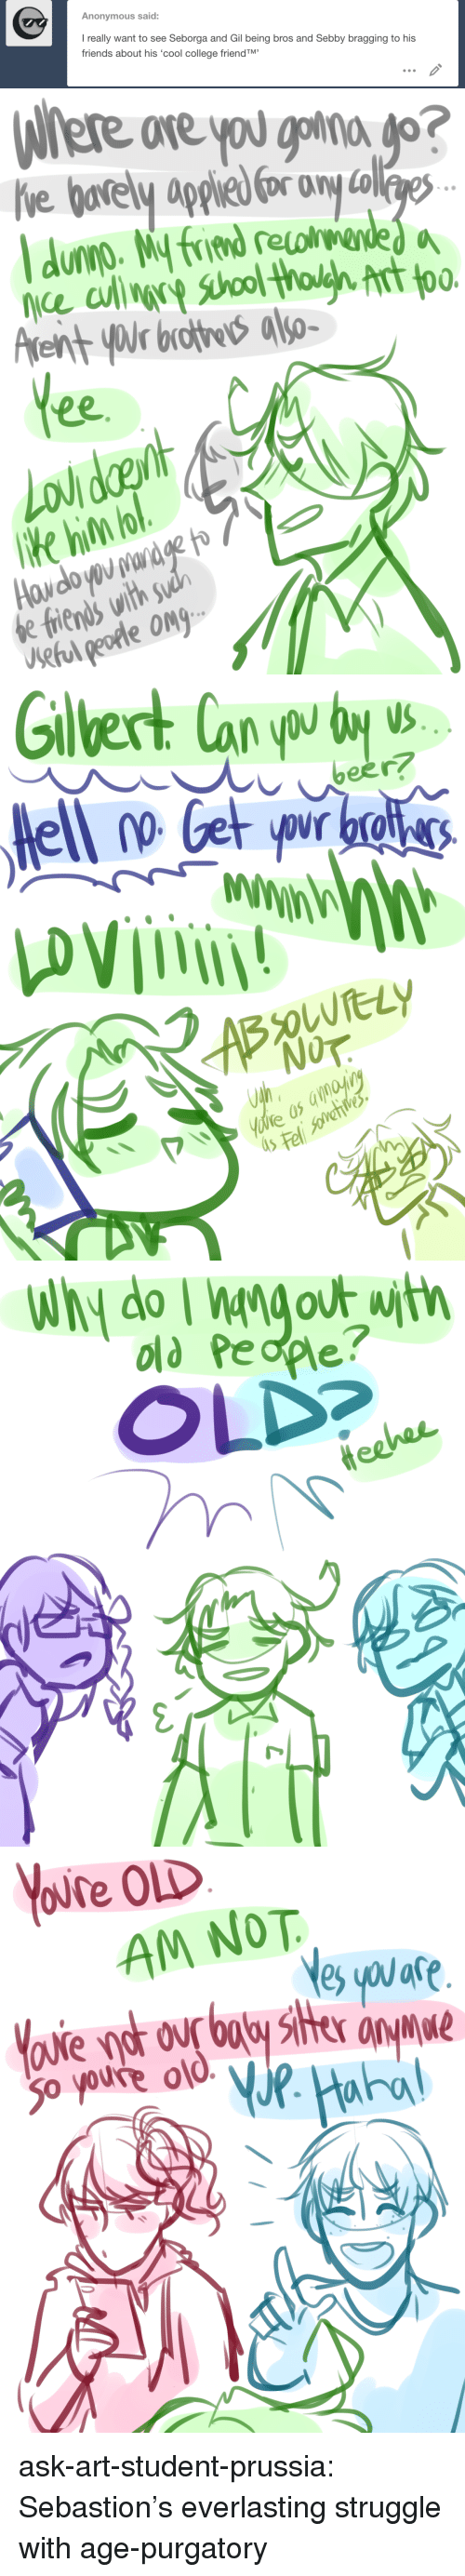 College, Friends, and Old People: Anonymous said:  I really want to see Seborga and Gil being bros and Sebby bragging to his  friends about his 'cool college friendTM'   ore  ce culin  Arent yWr brothe also-  00.  Ke hin o  e friends with$  Ueful peotle Ong   5  iS   old People?  OLD   AM NOT  are  o youre o ask-art-student-prussia:  Sebastion's everlasting struggle with age-purgatory